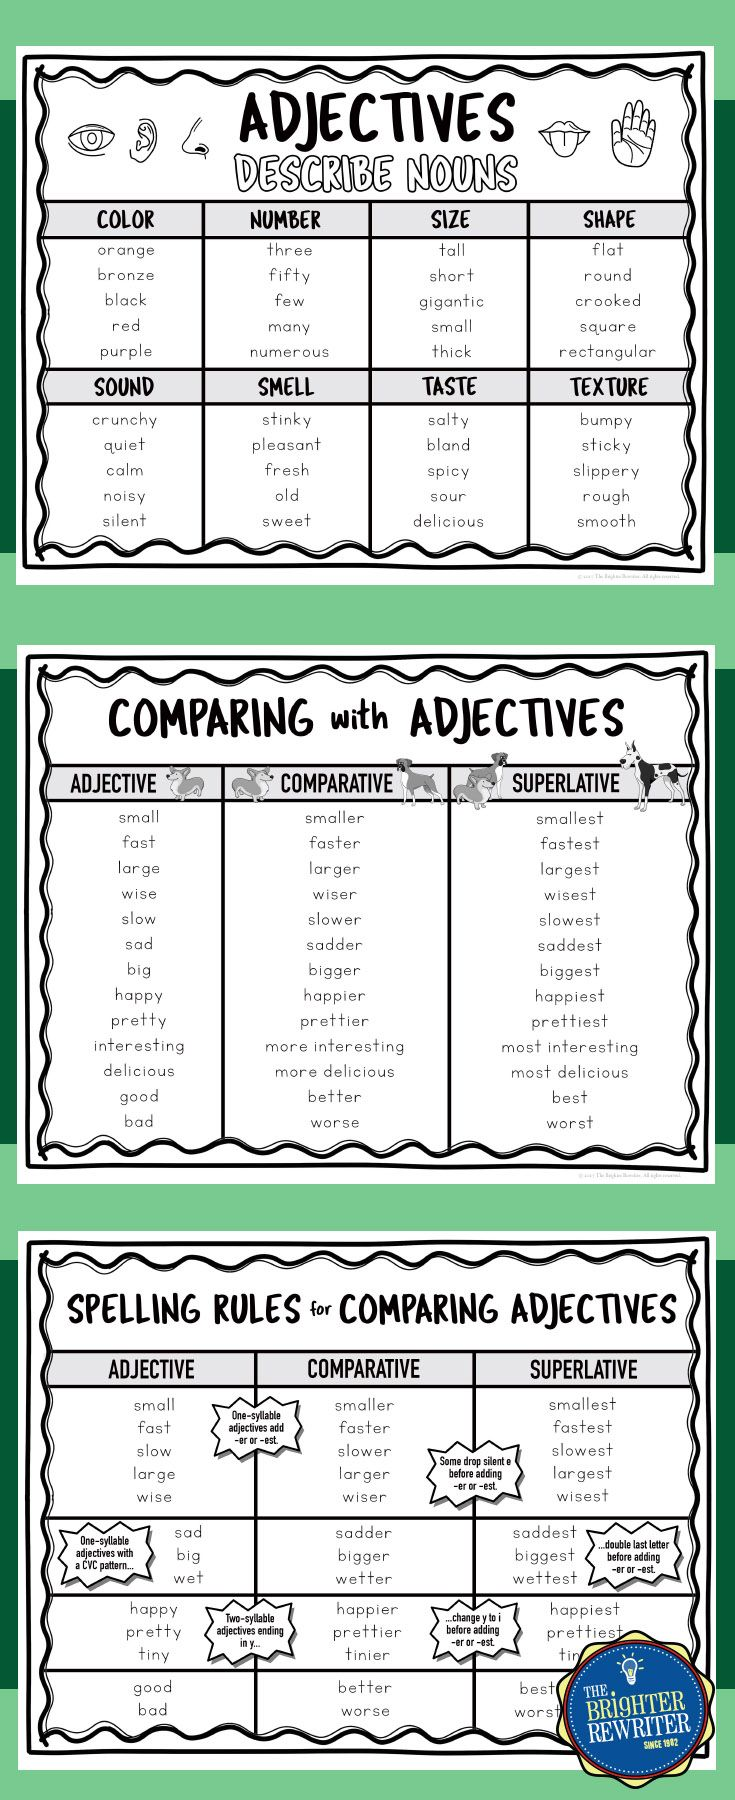 14 mejores imágenes de Vocabulary Supports - Shades of Meaning en ...